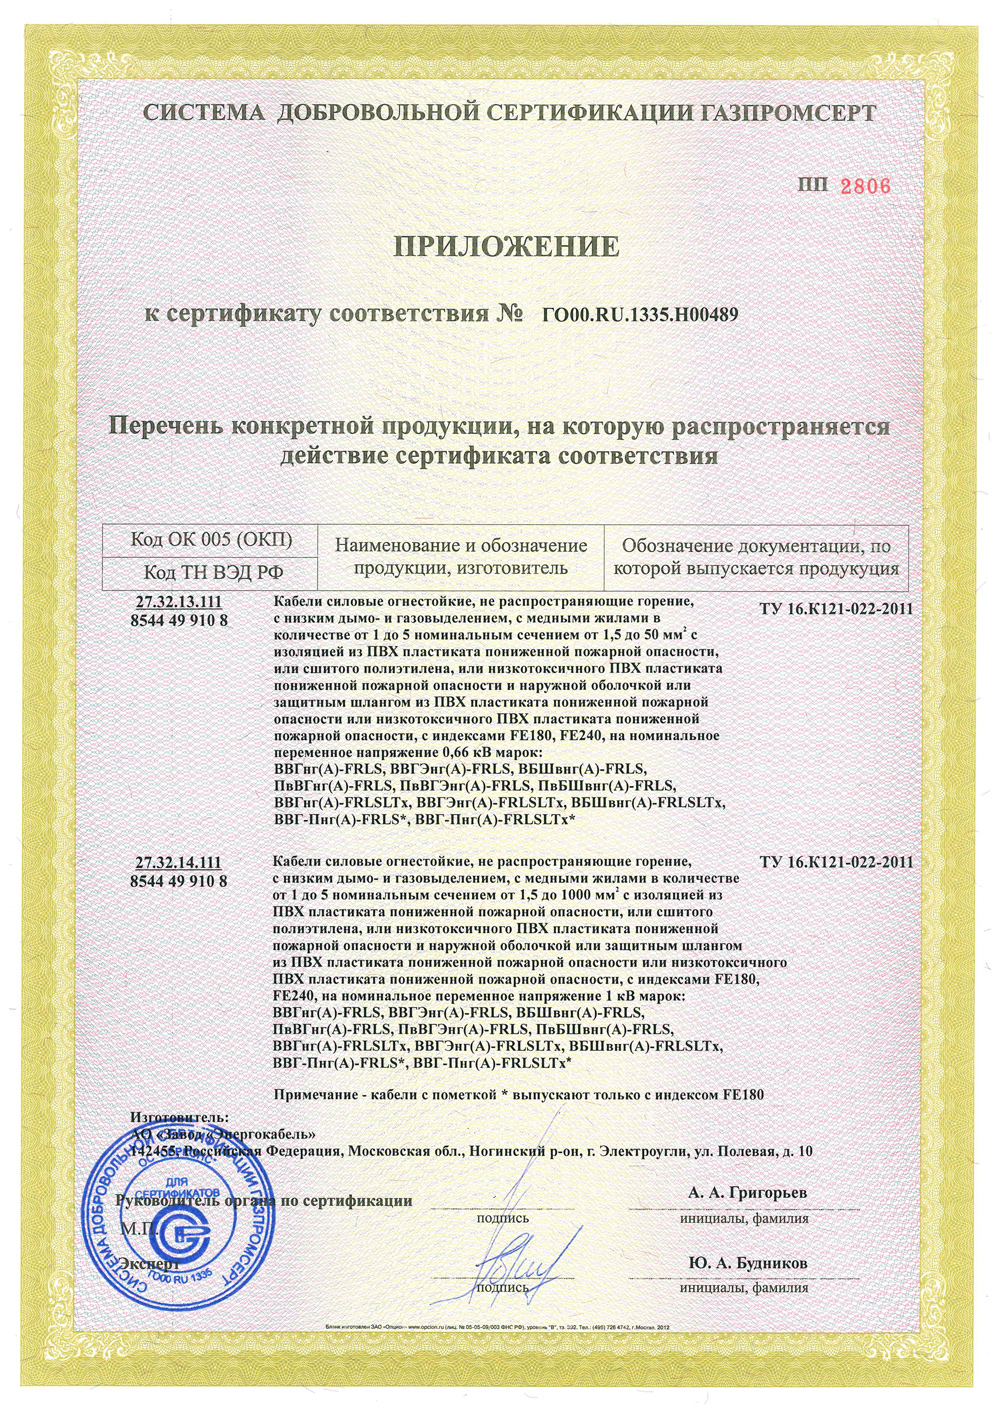 The appendix to the Certificate of Conformity № ГО00.RU.1335.Н00489.